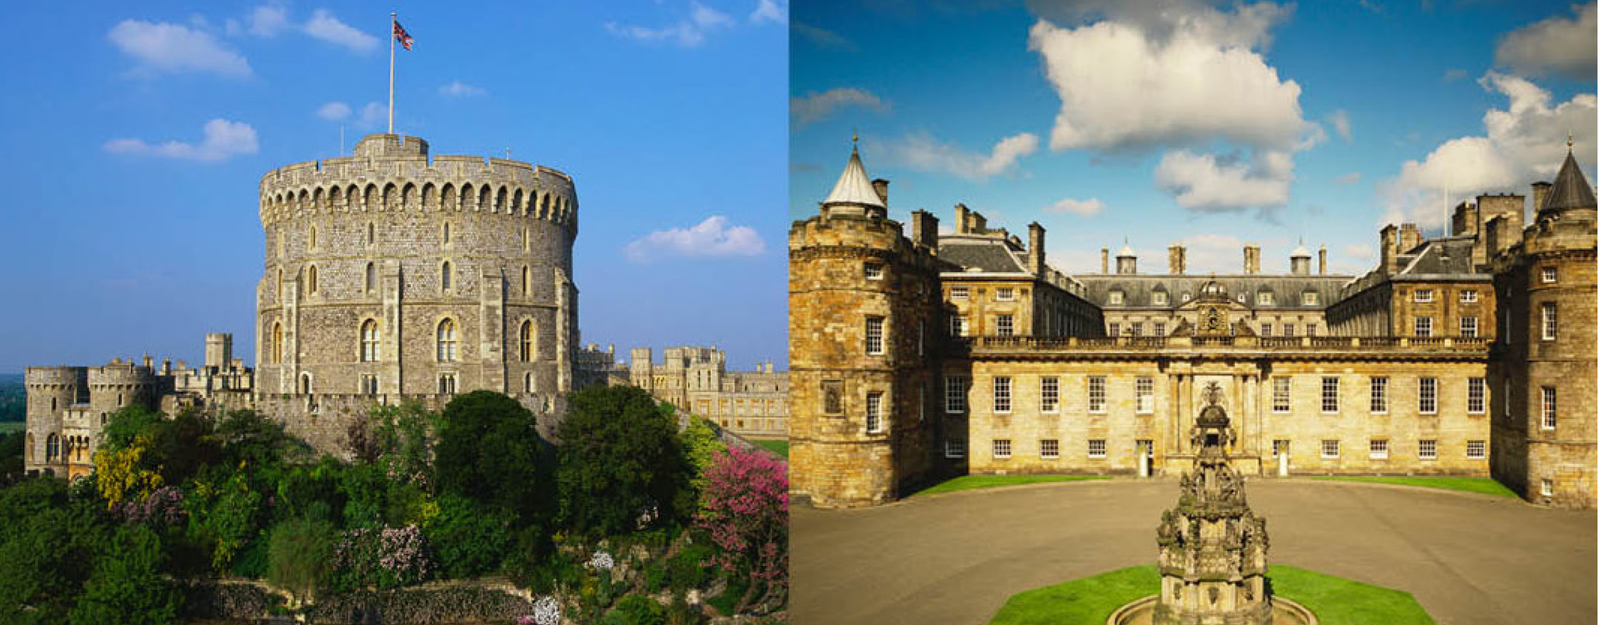 Windsor Castle and the Palace of Holyroodhouse